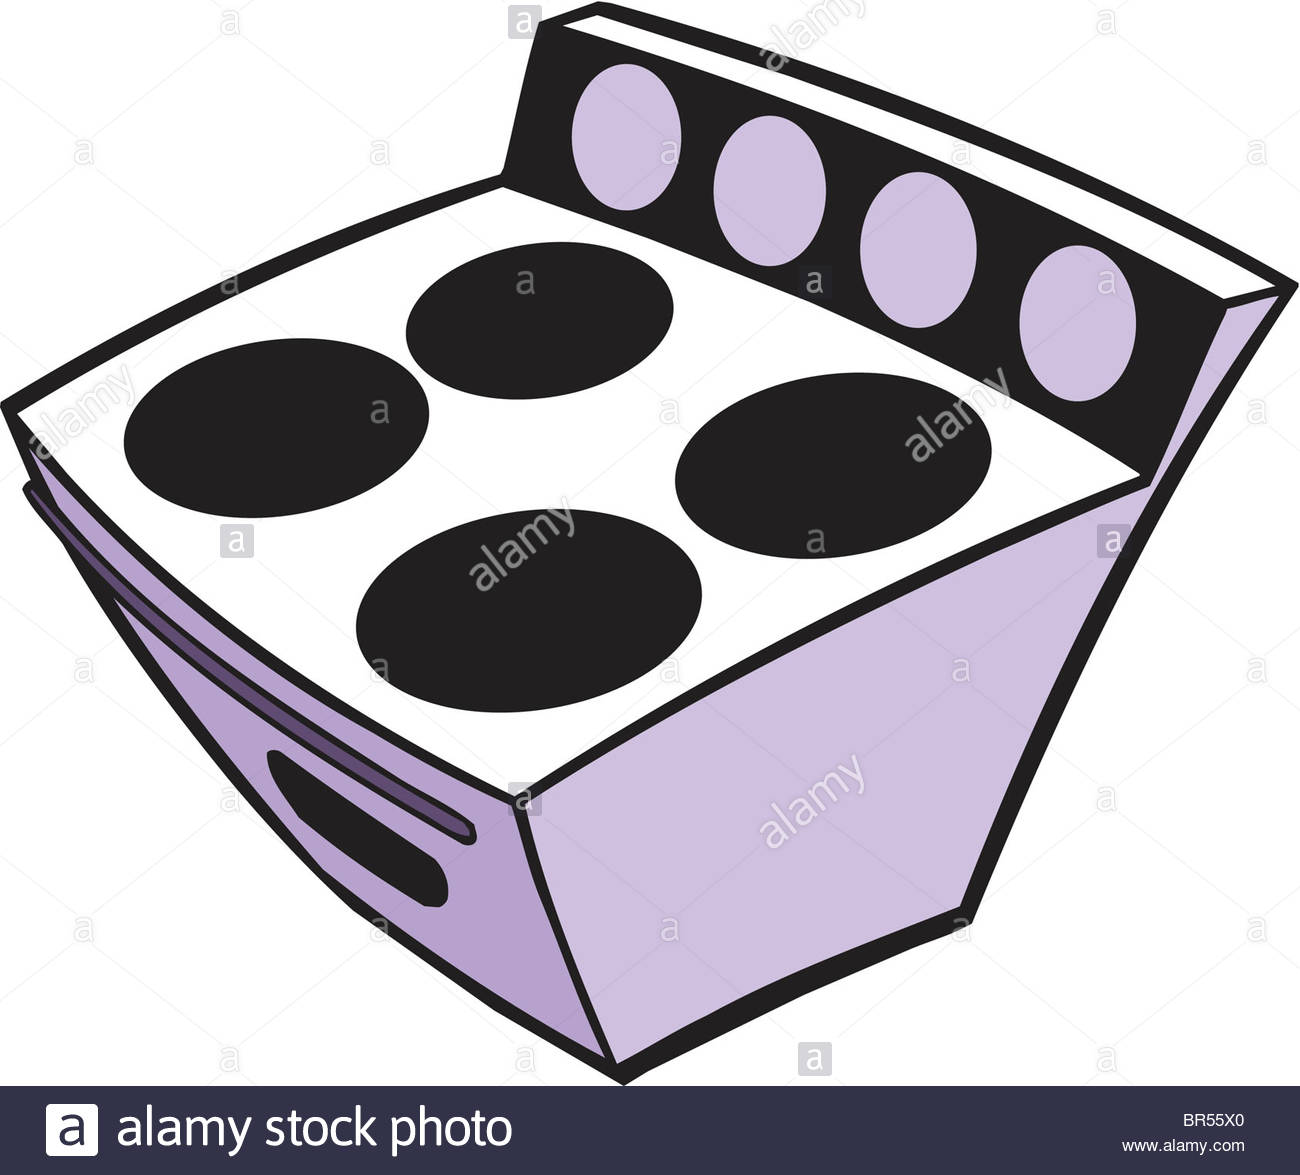 1300x1175 A Cartoon Drawing Of A Stove Stock Photo 31461864